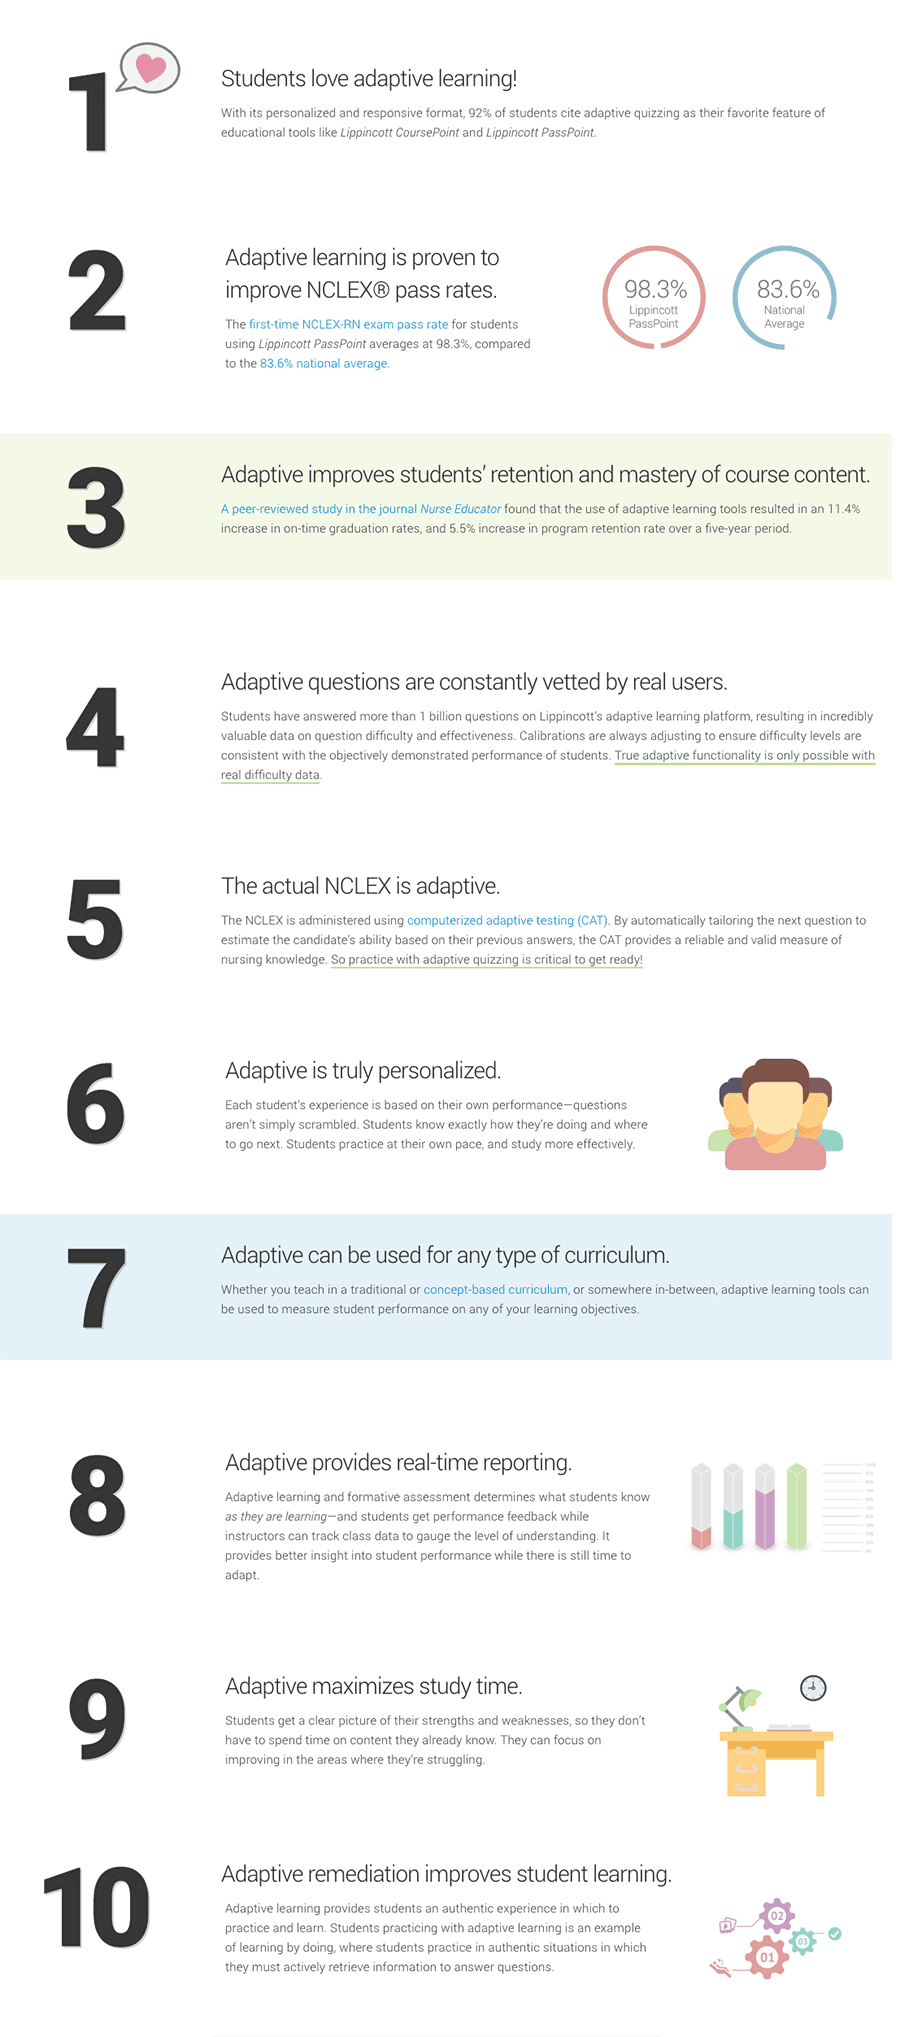 Top 10 benefits of adaptive learning